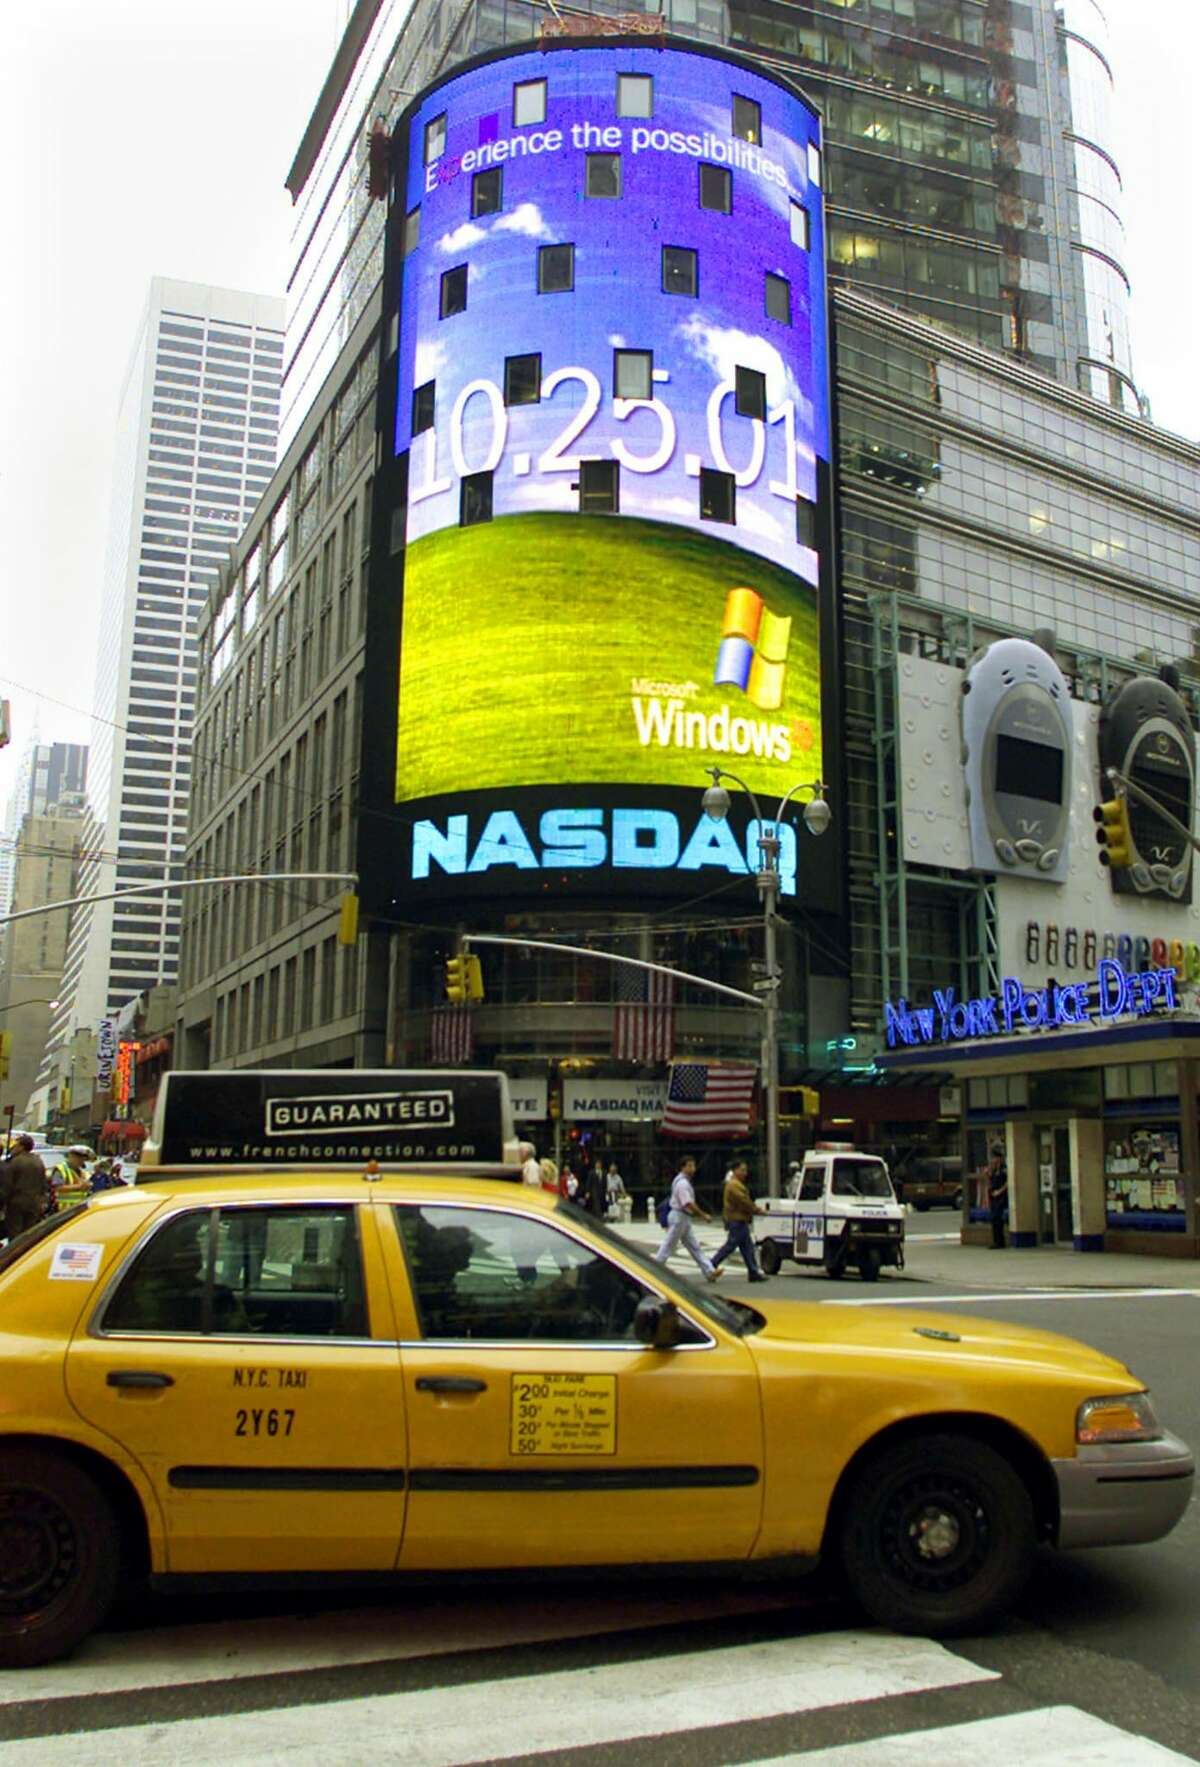 The NASDAQ sign in New York's Times Square announces the launch of the Microsoft Windows XP operating system scheduled for October 25, 2001.